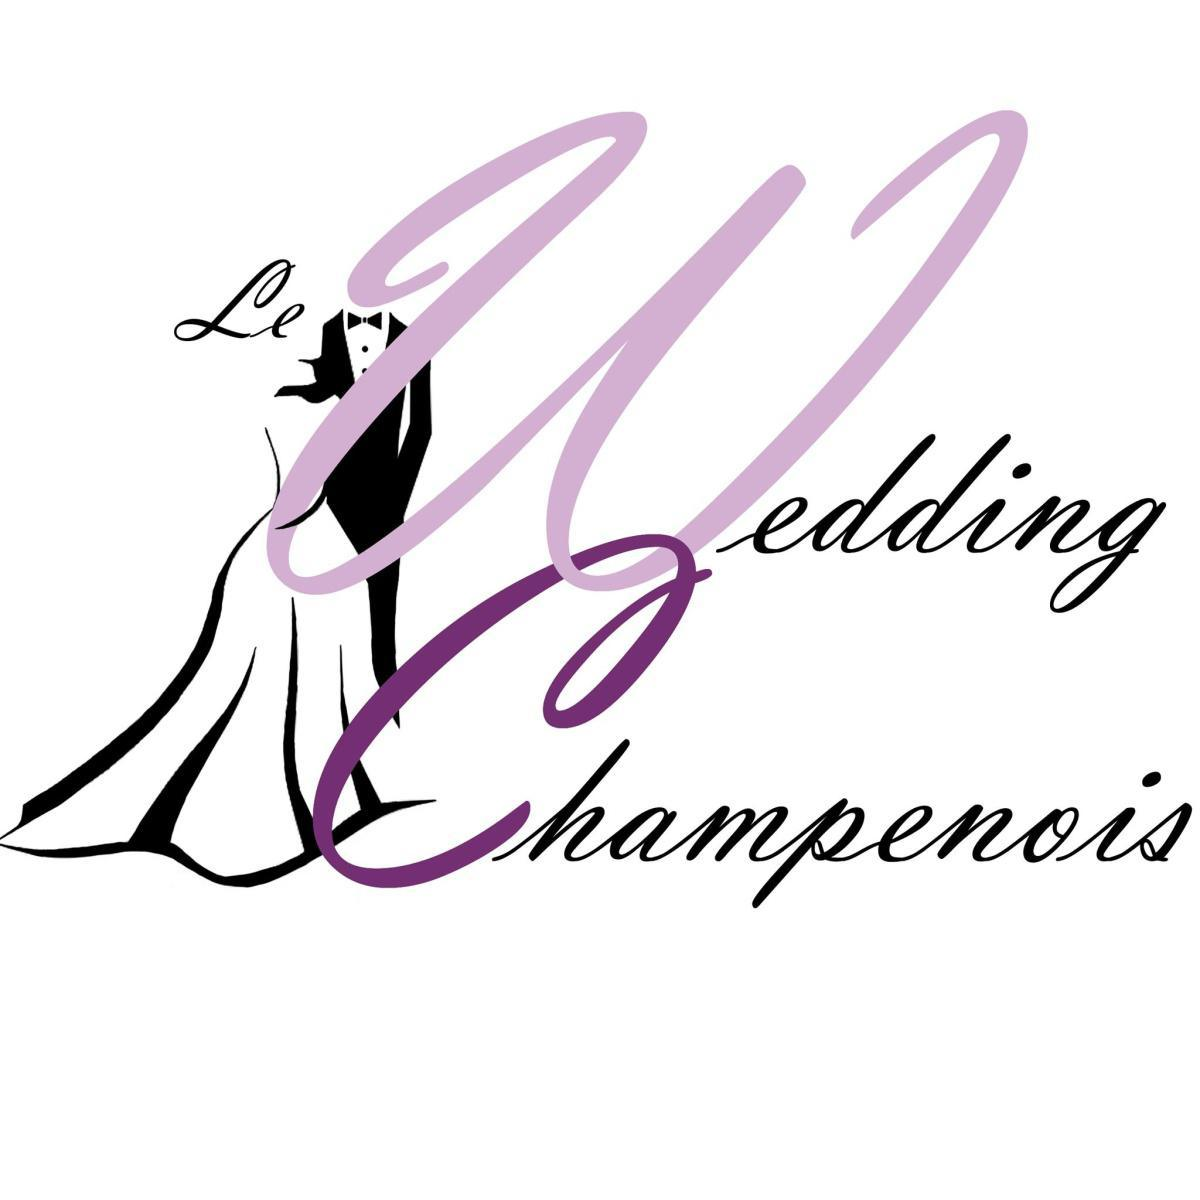 LE WEDDING CHAMPENOIS